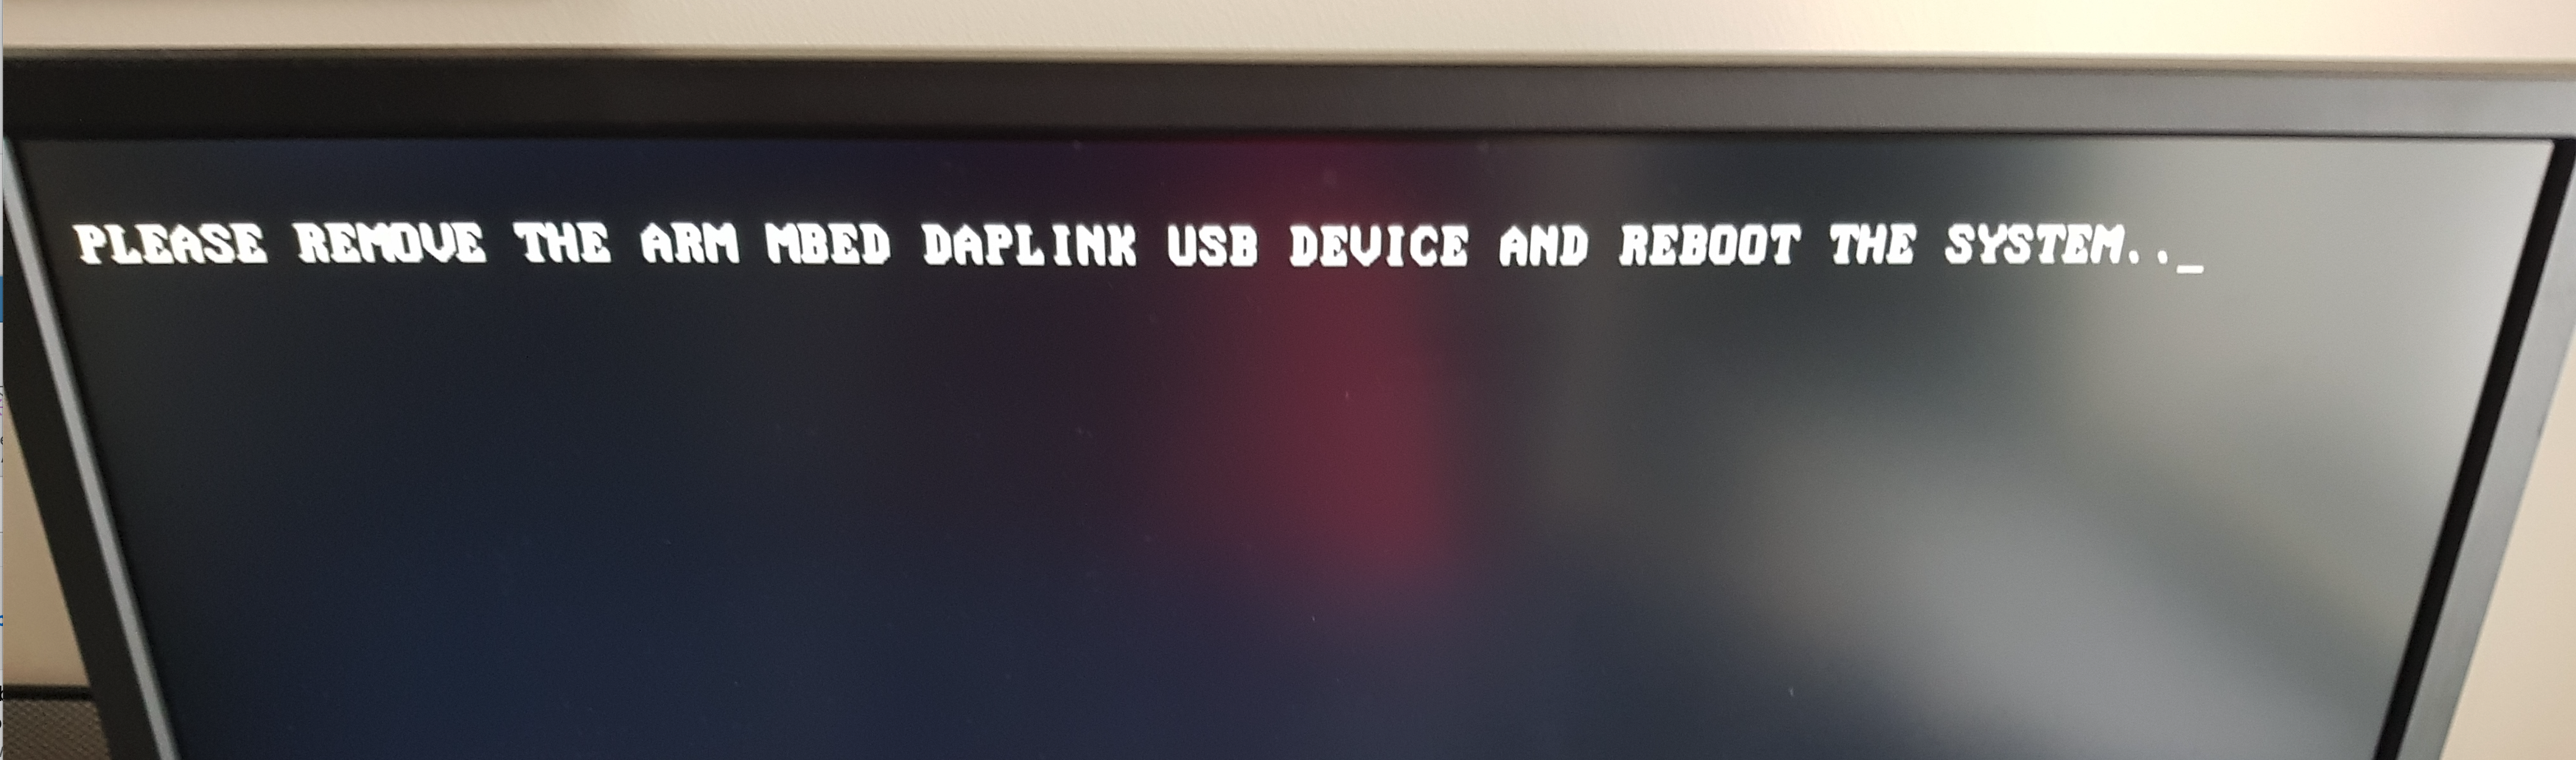 Make bootloader warning message configurable · Issue #639